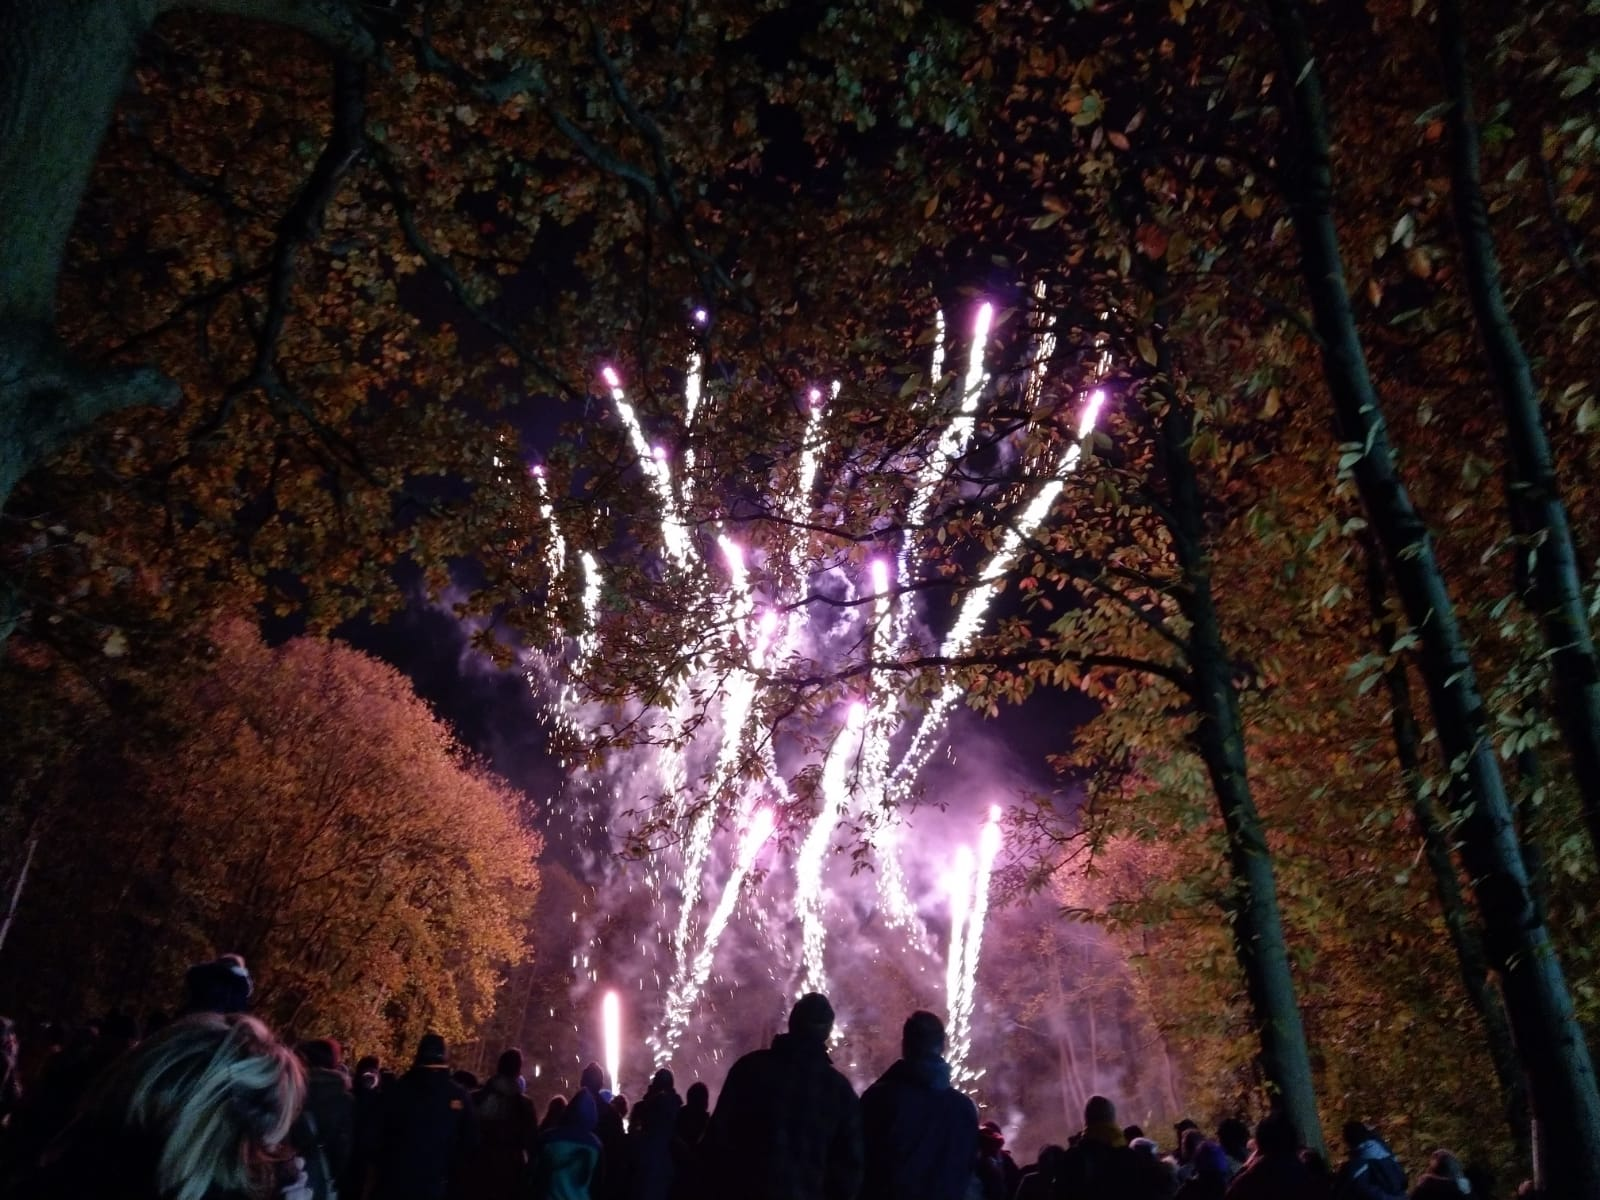 Buckmore Park Scout Campsite Fireworks – 26th October 2019